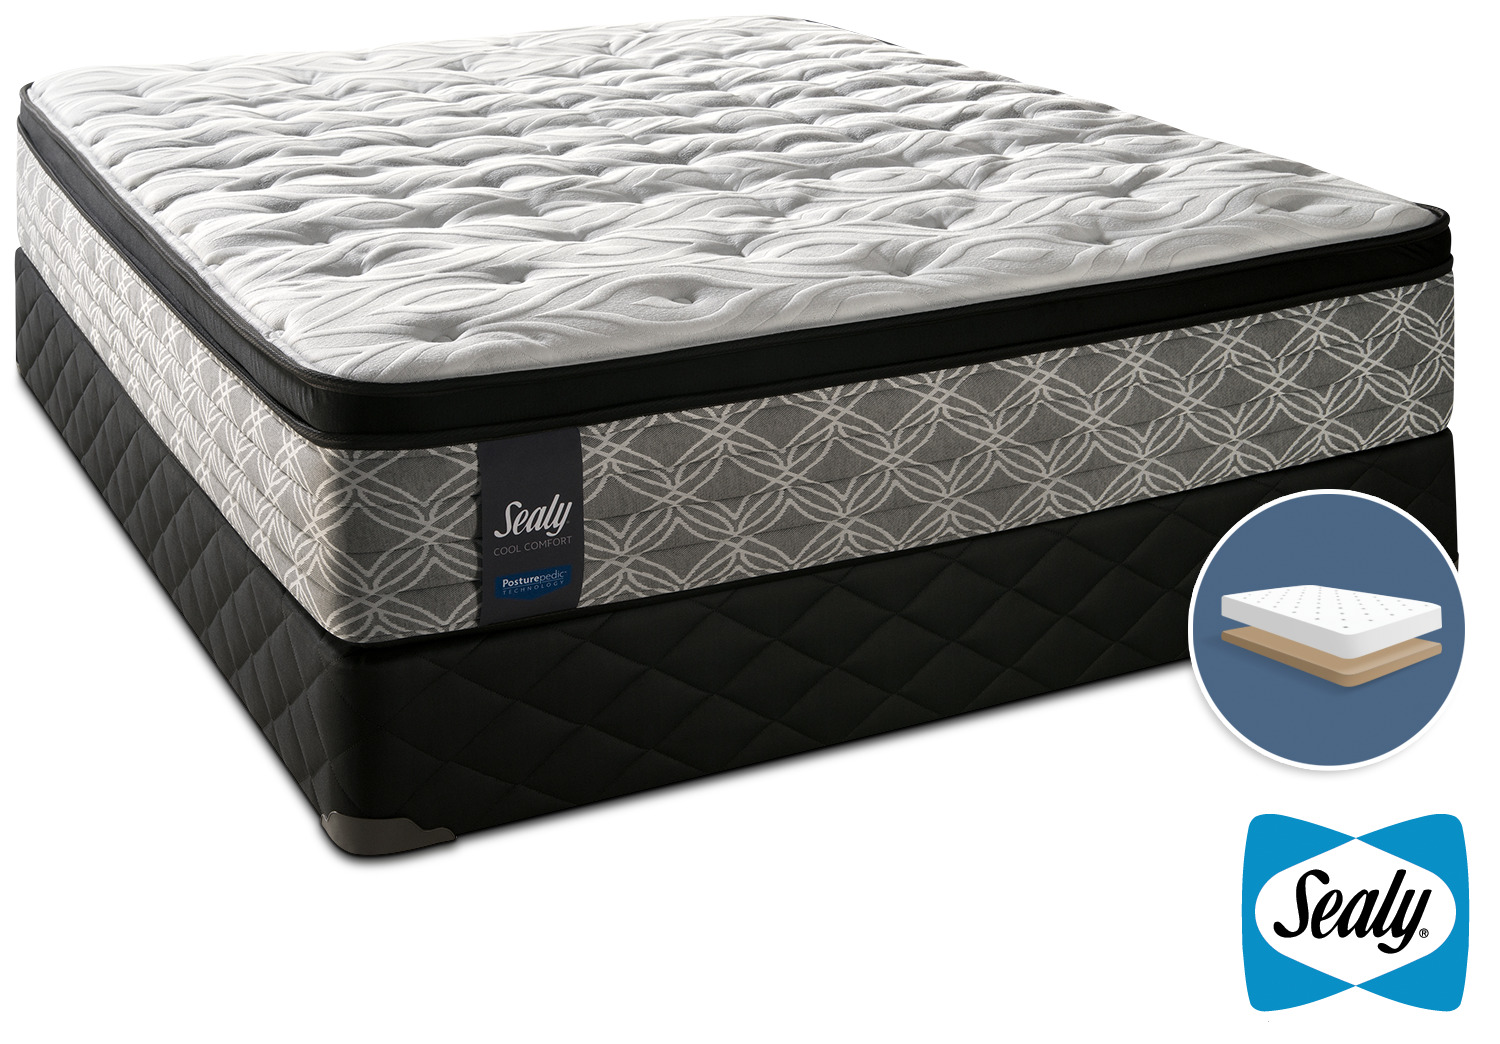 Sealy Super Nova Cushion Firm Queen Mattress and Low-Profile Boxspring Set